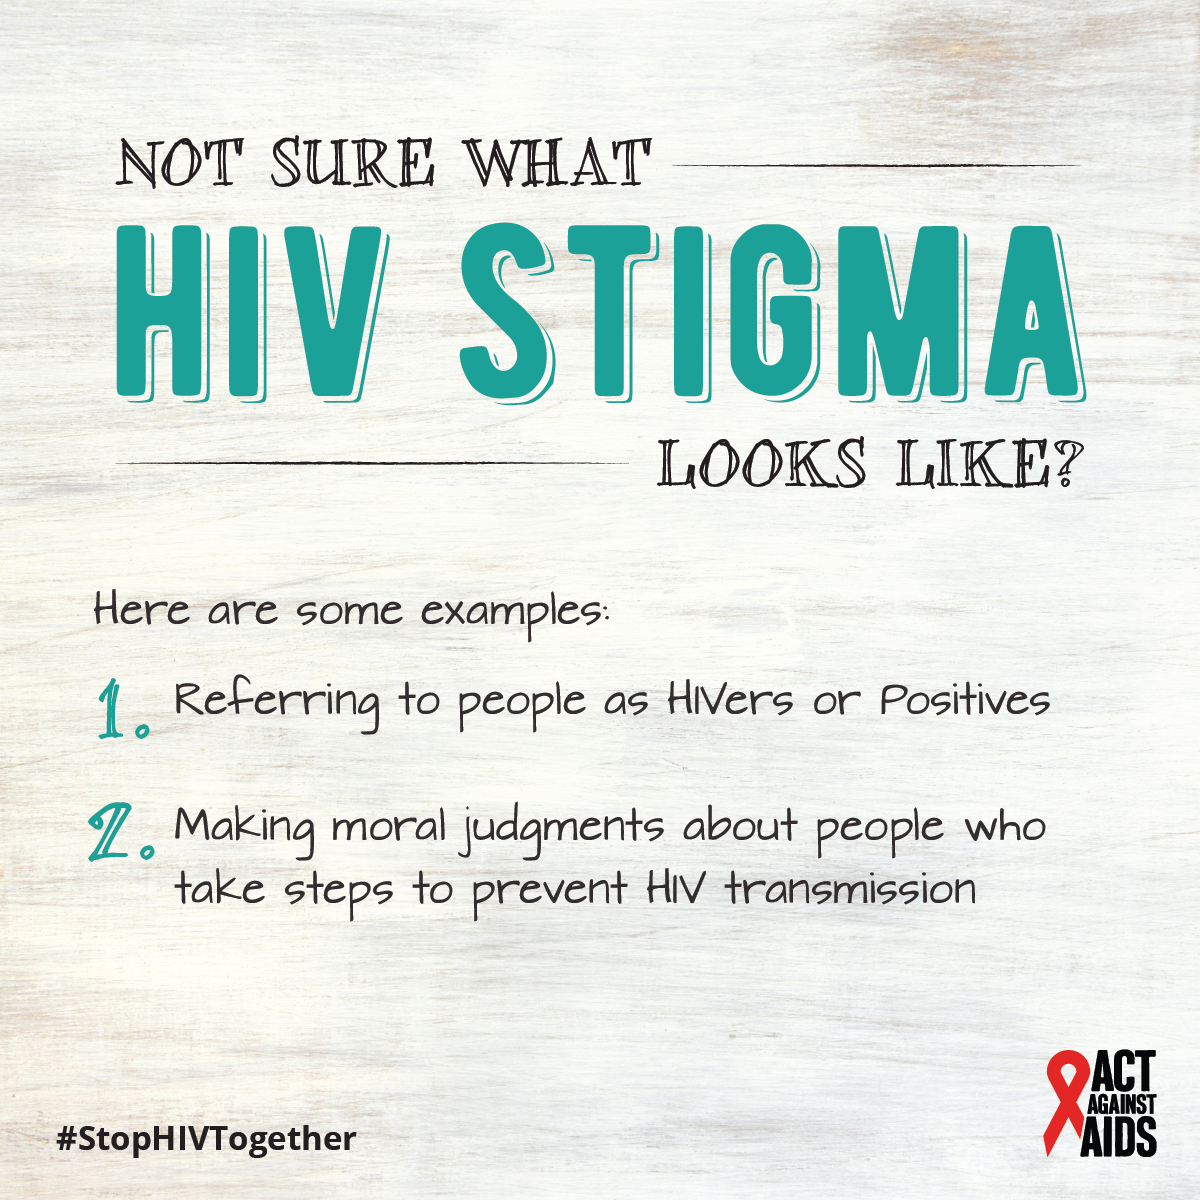 Not sure what HIV stigma looks like? Here are some examples: 1. Referring to people as HIVers or Positives 2. Making moral judgments about people who take steps to prevent HIV transmission. #StopHIVTogether Act Against AIDS